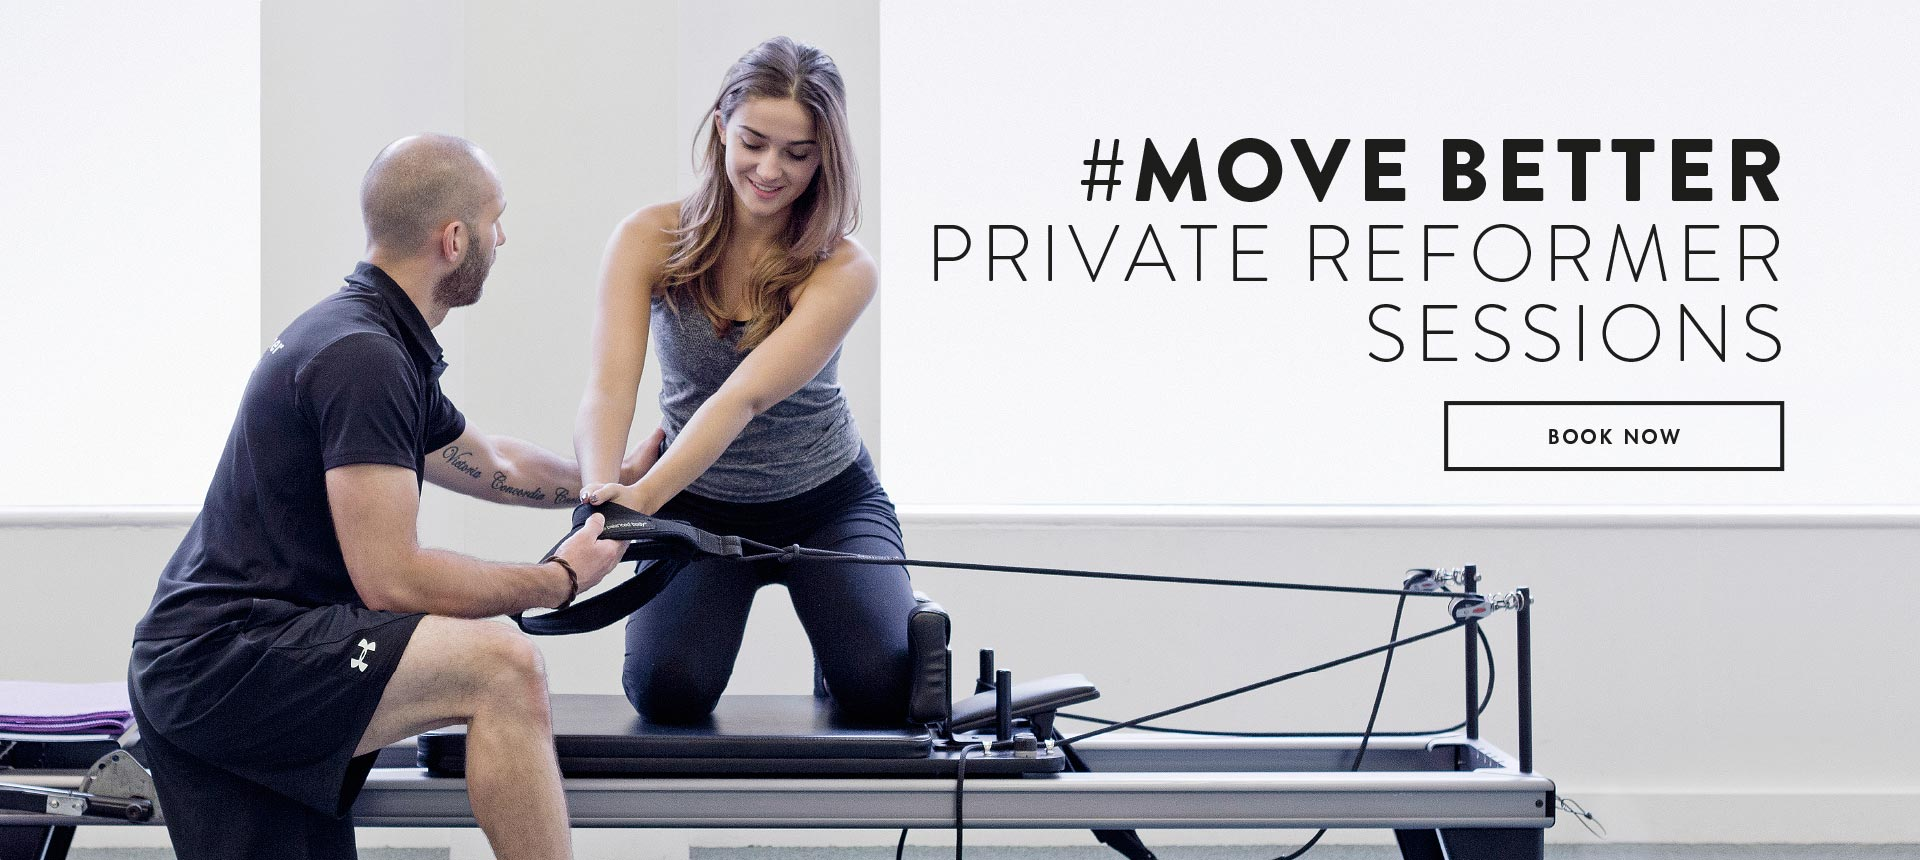 Move Better Private Reformer Sessions